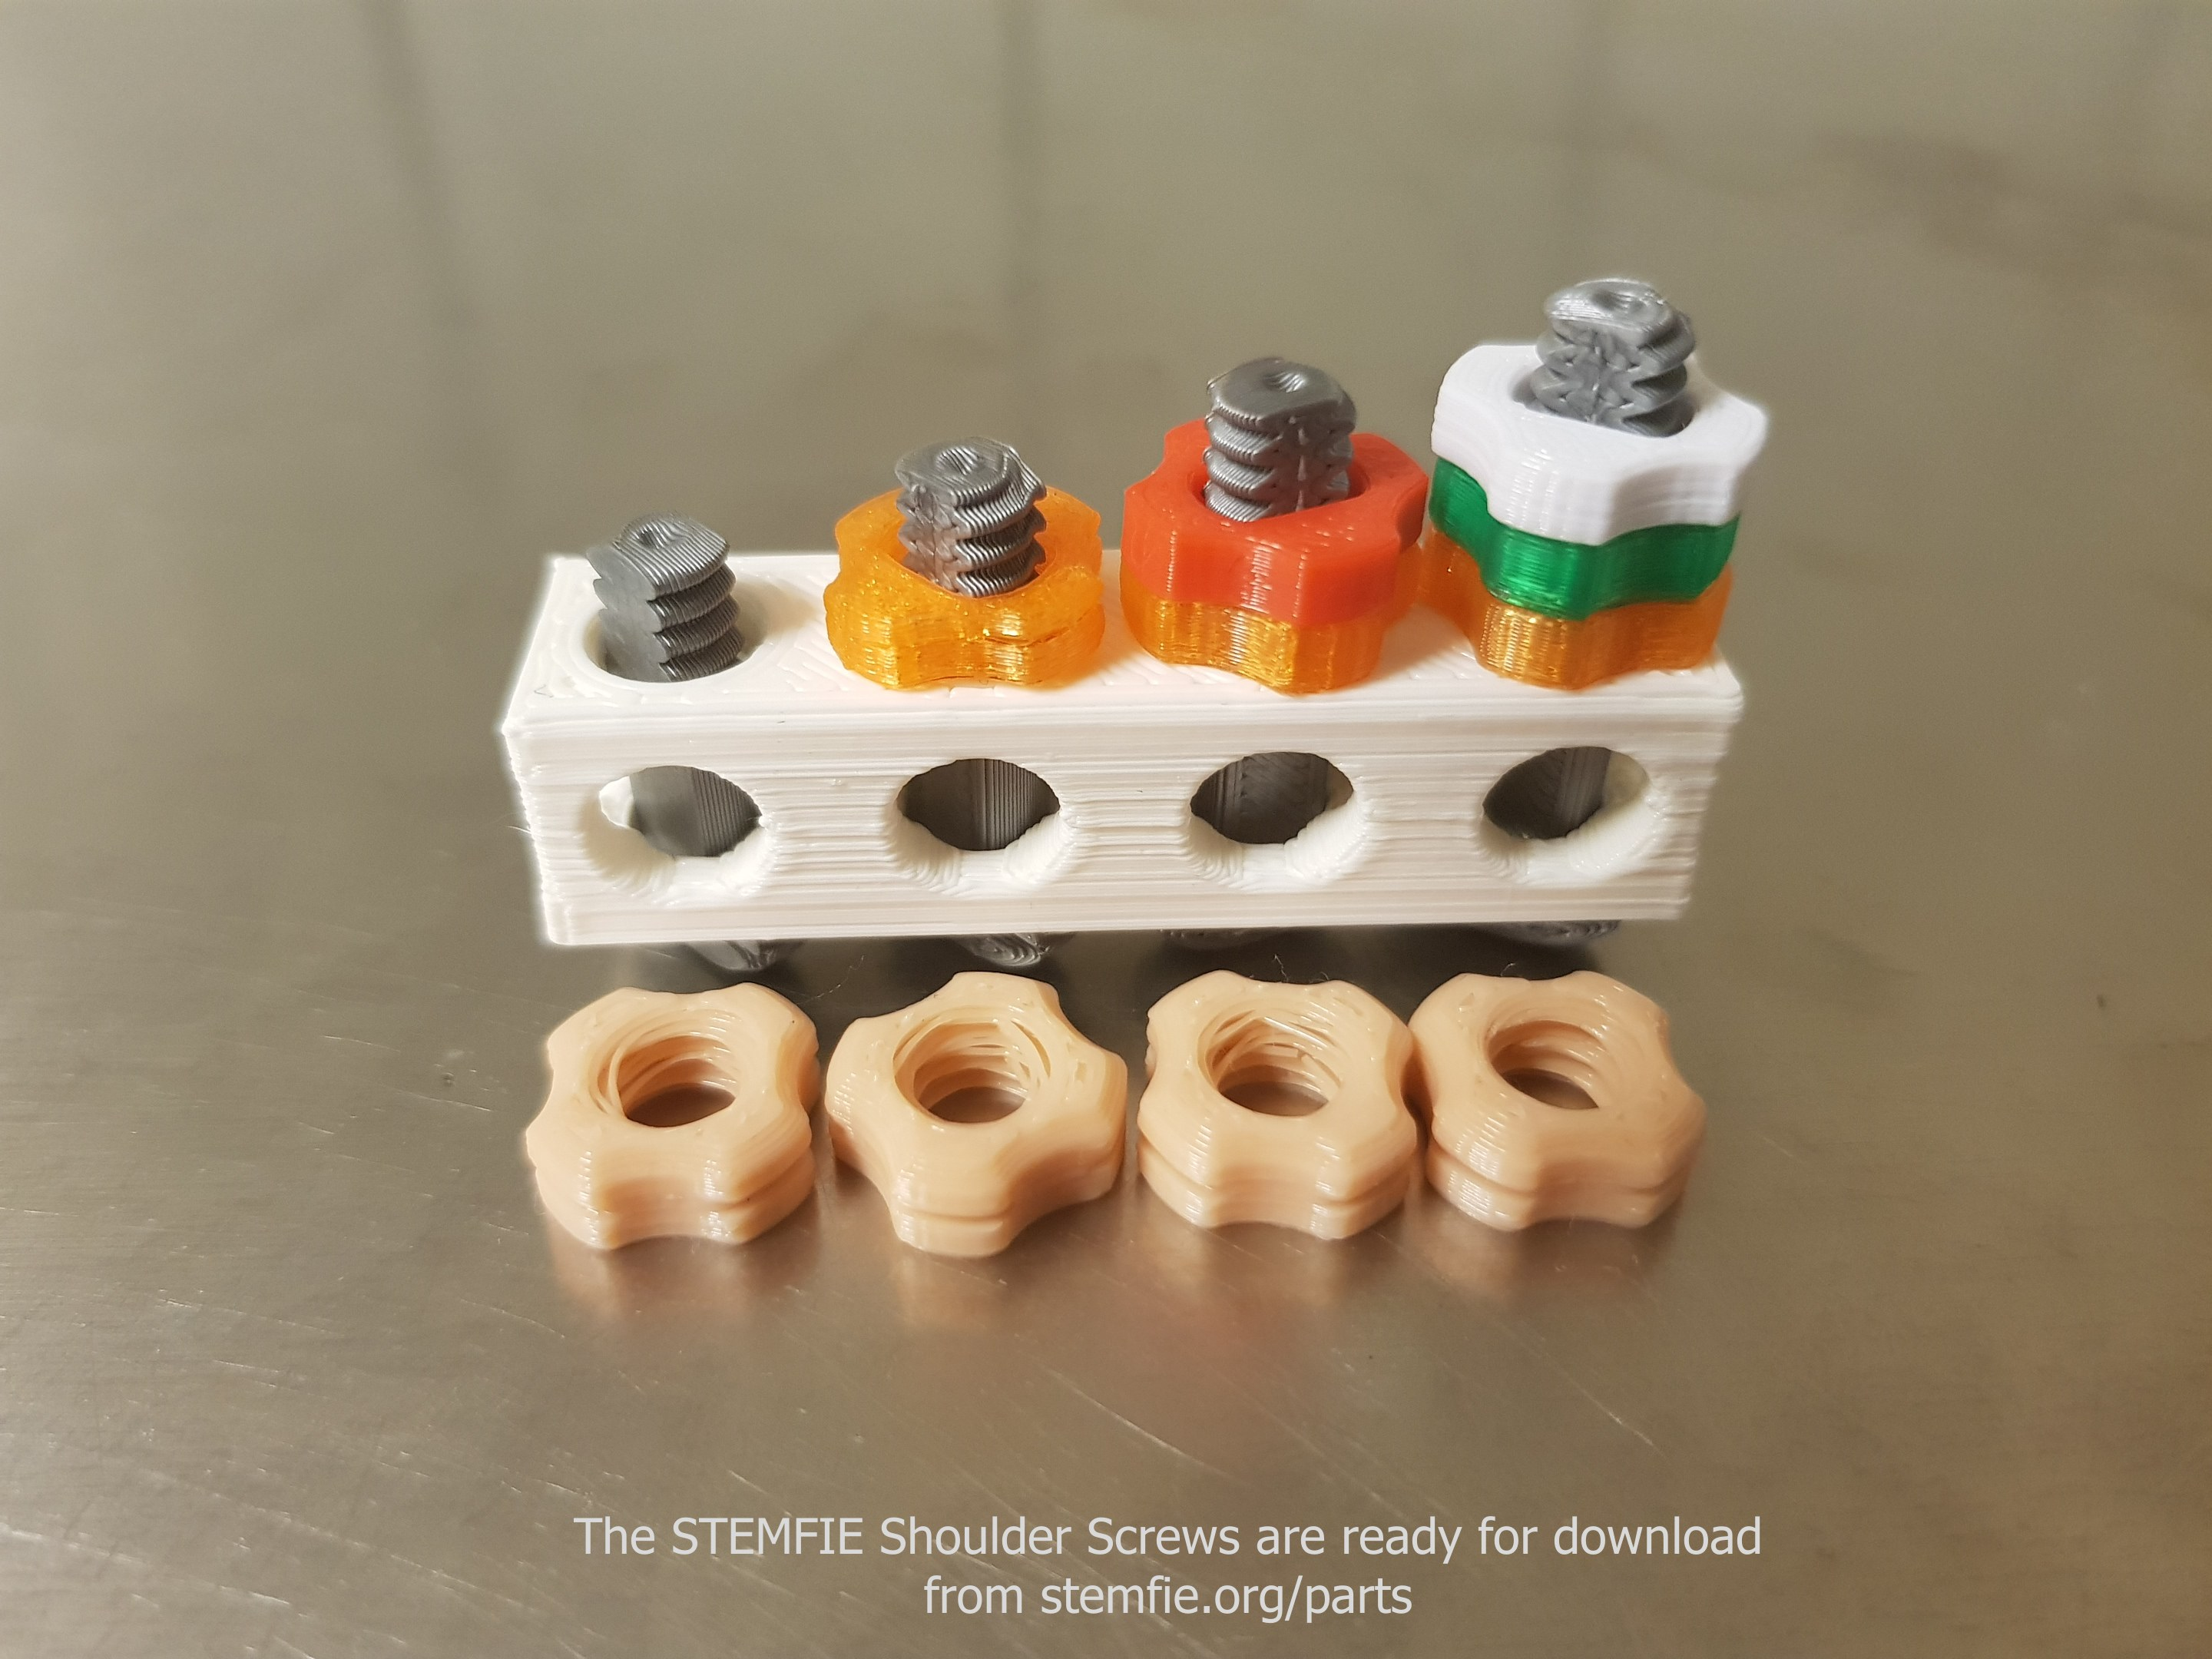 The STEMFIE Shoulder Screws are ready for download v01